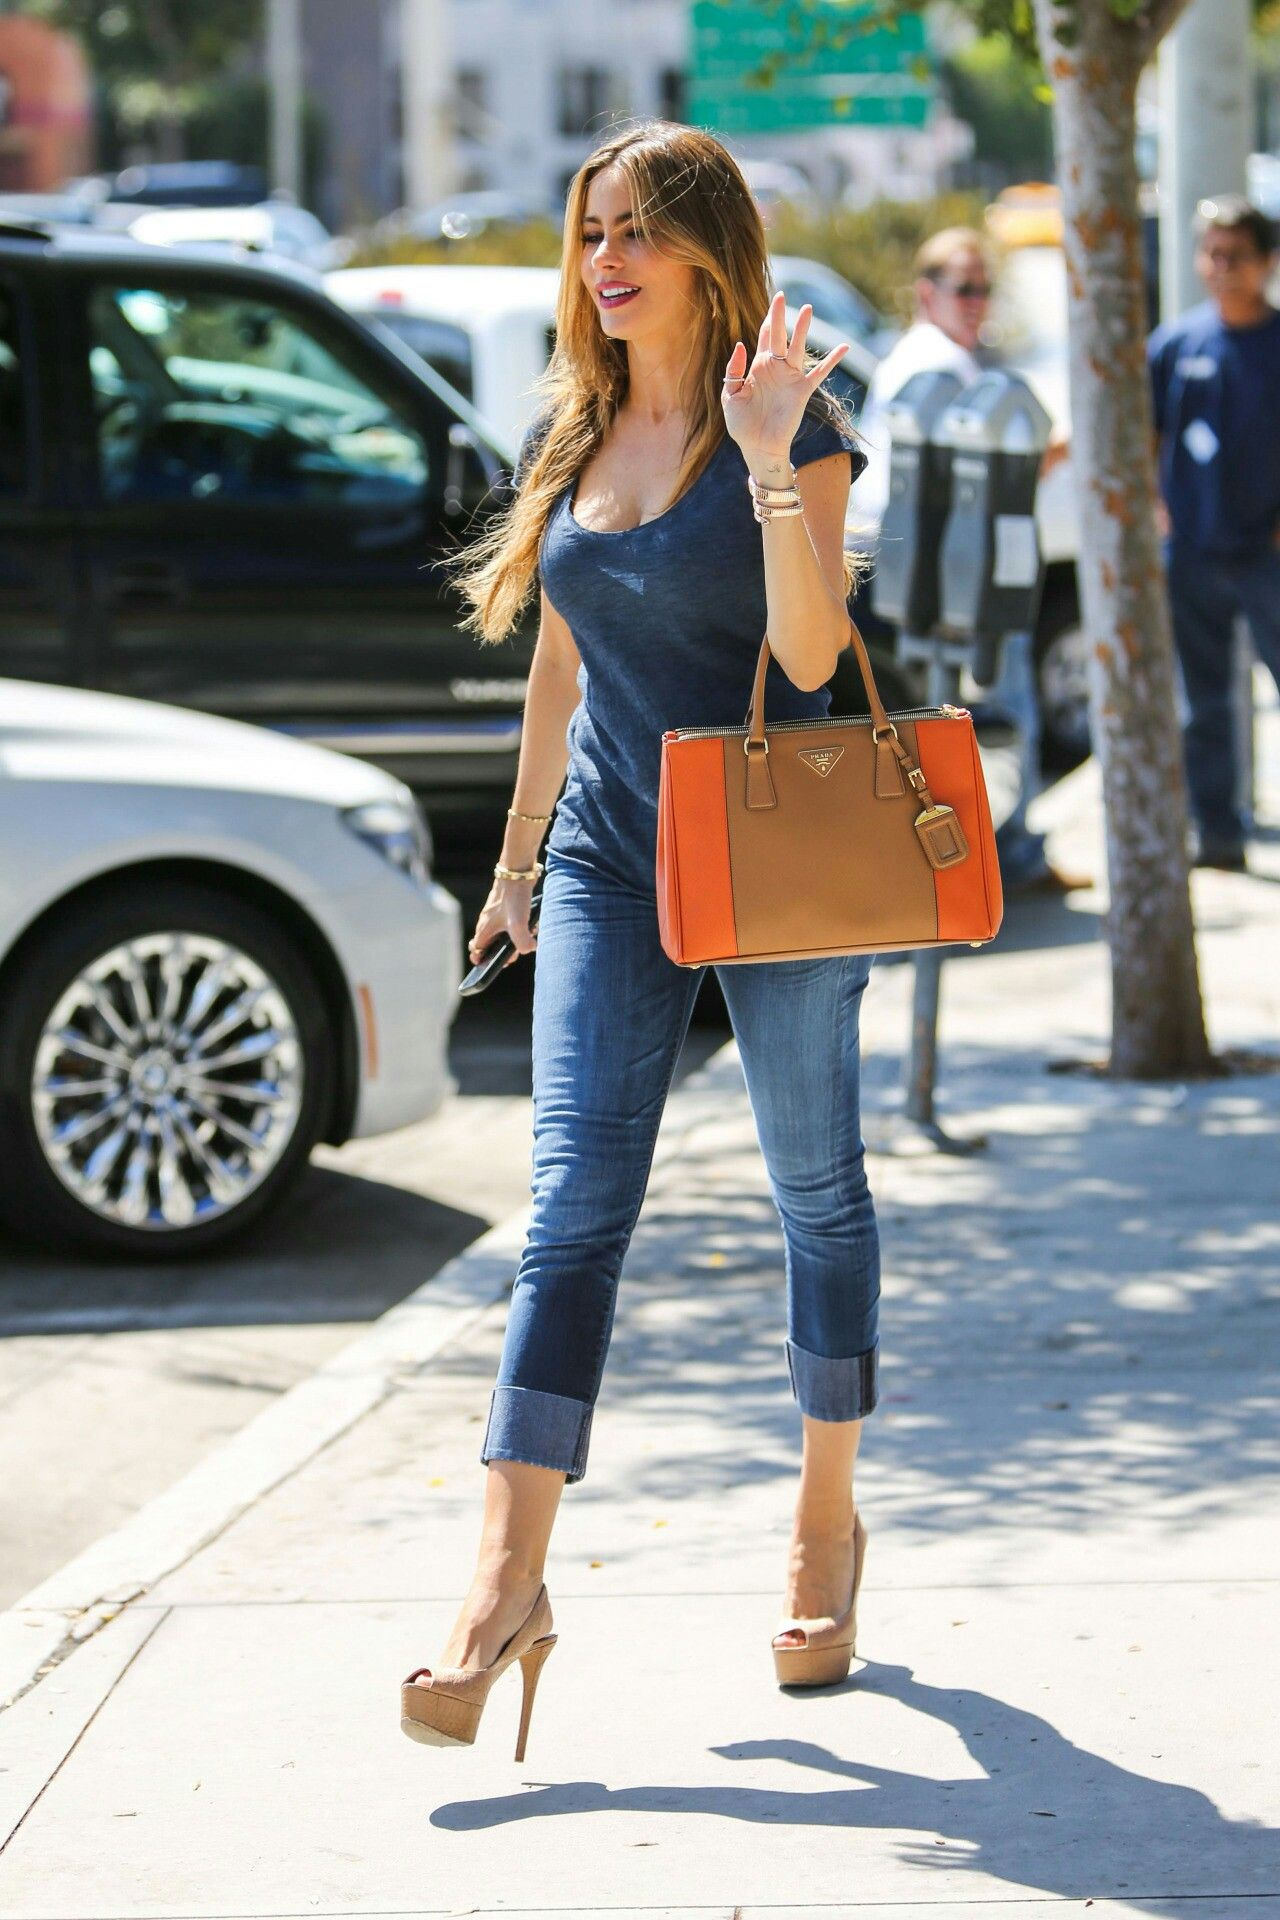 Celebrities in skinny jeans and high heels